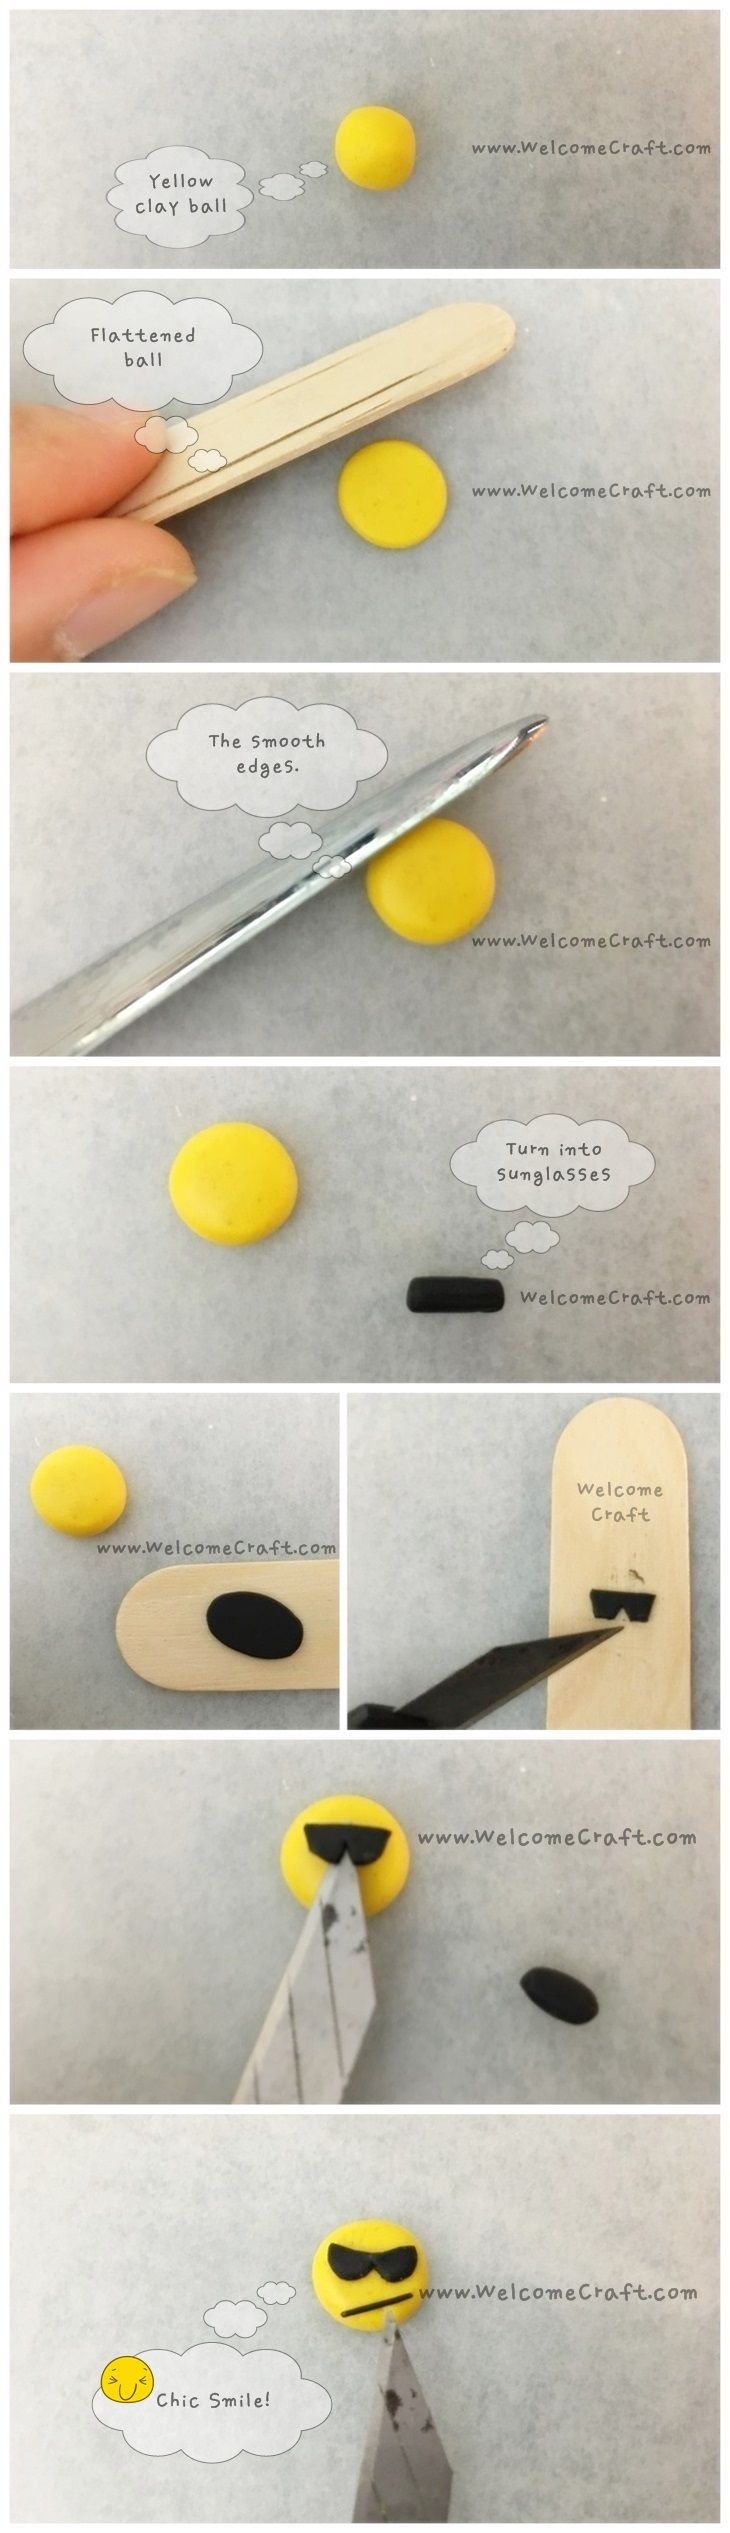 How to make Clay Emoji step by step tutorial Instruction